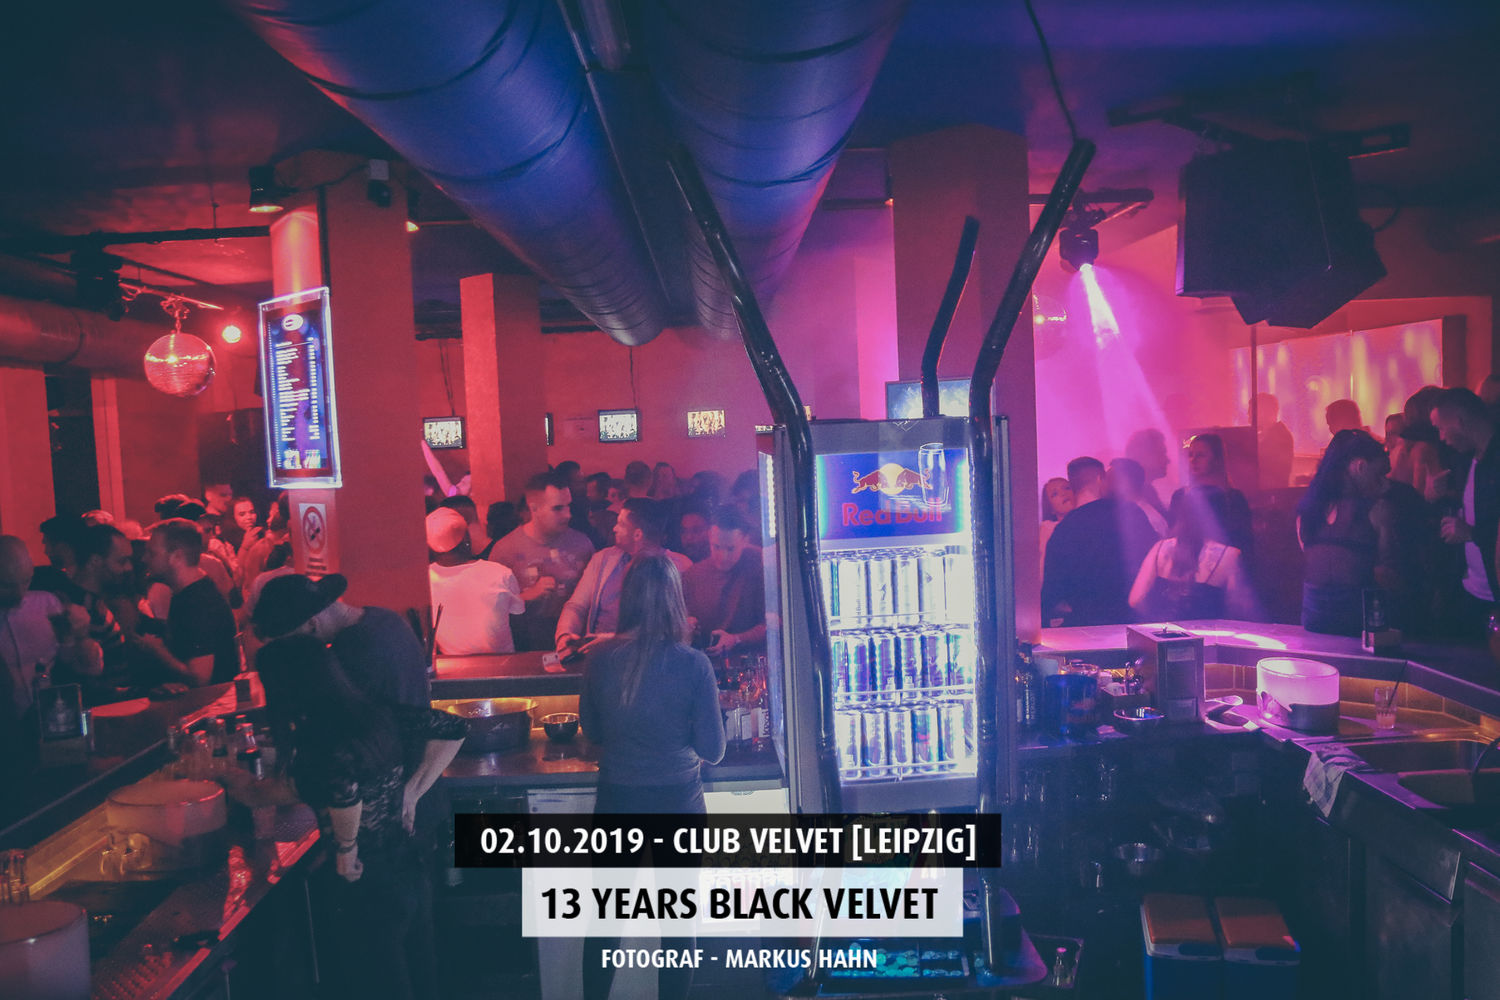 13-years-black-velvet-club-velvet